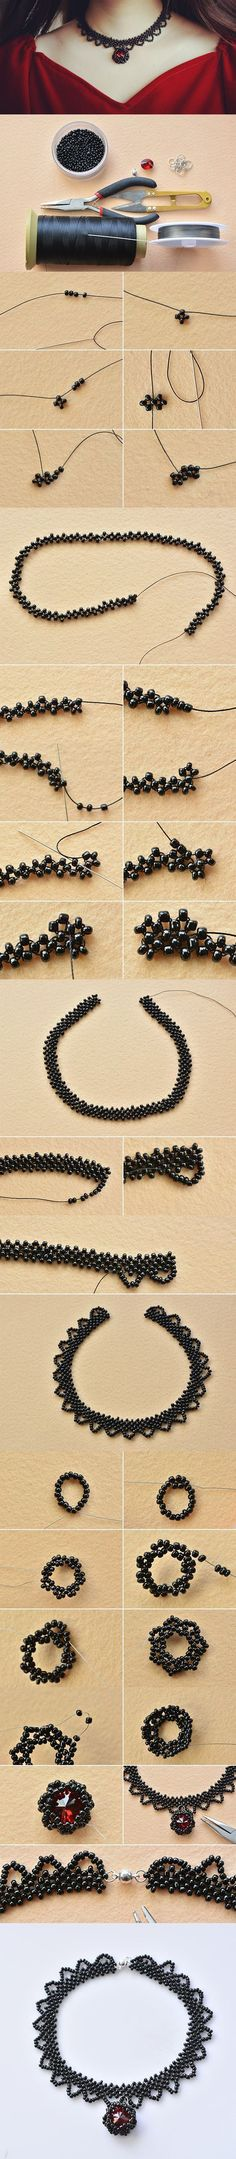 épinglé par ❃❀CM❁✿⊱Get ready to show your handiwork. Here is a tutorial for a handmade vintage choker necklace with black seed beads. After you string up and down the black seed beads as shown, complete the choker wi… Bead Jewellery, Seed Bead Jewelry, Seed Beads, Beaded Jewelry, Jewellery Shops, Jewelry Stores, Jewellery Holder, Handmade Jewellery, Earrings Handmade